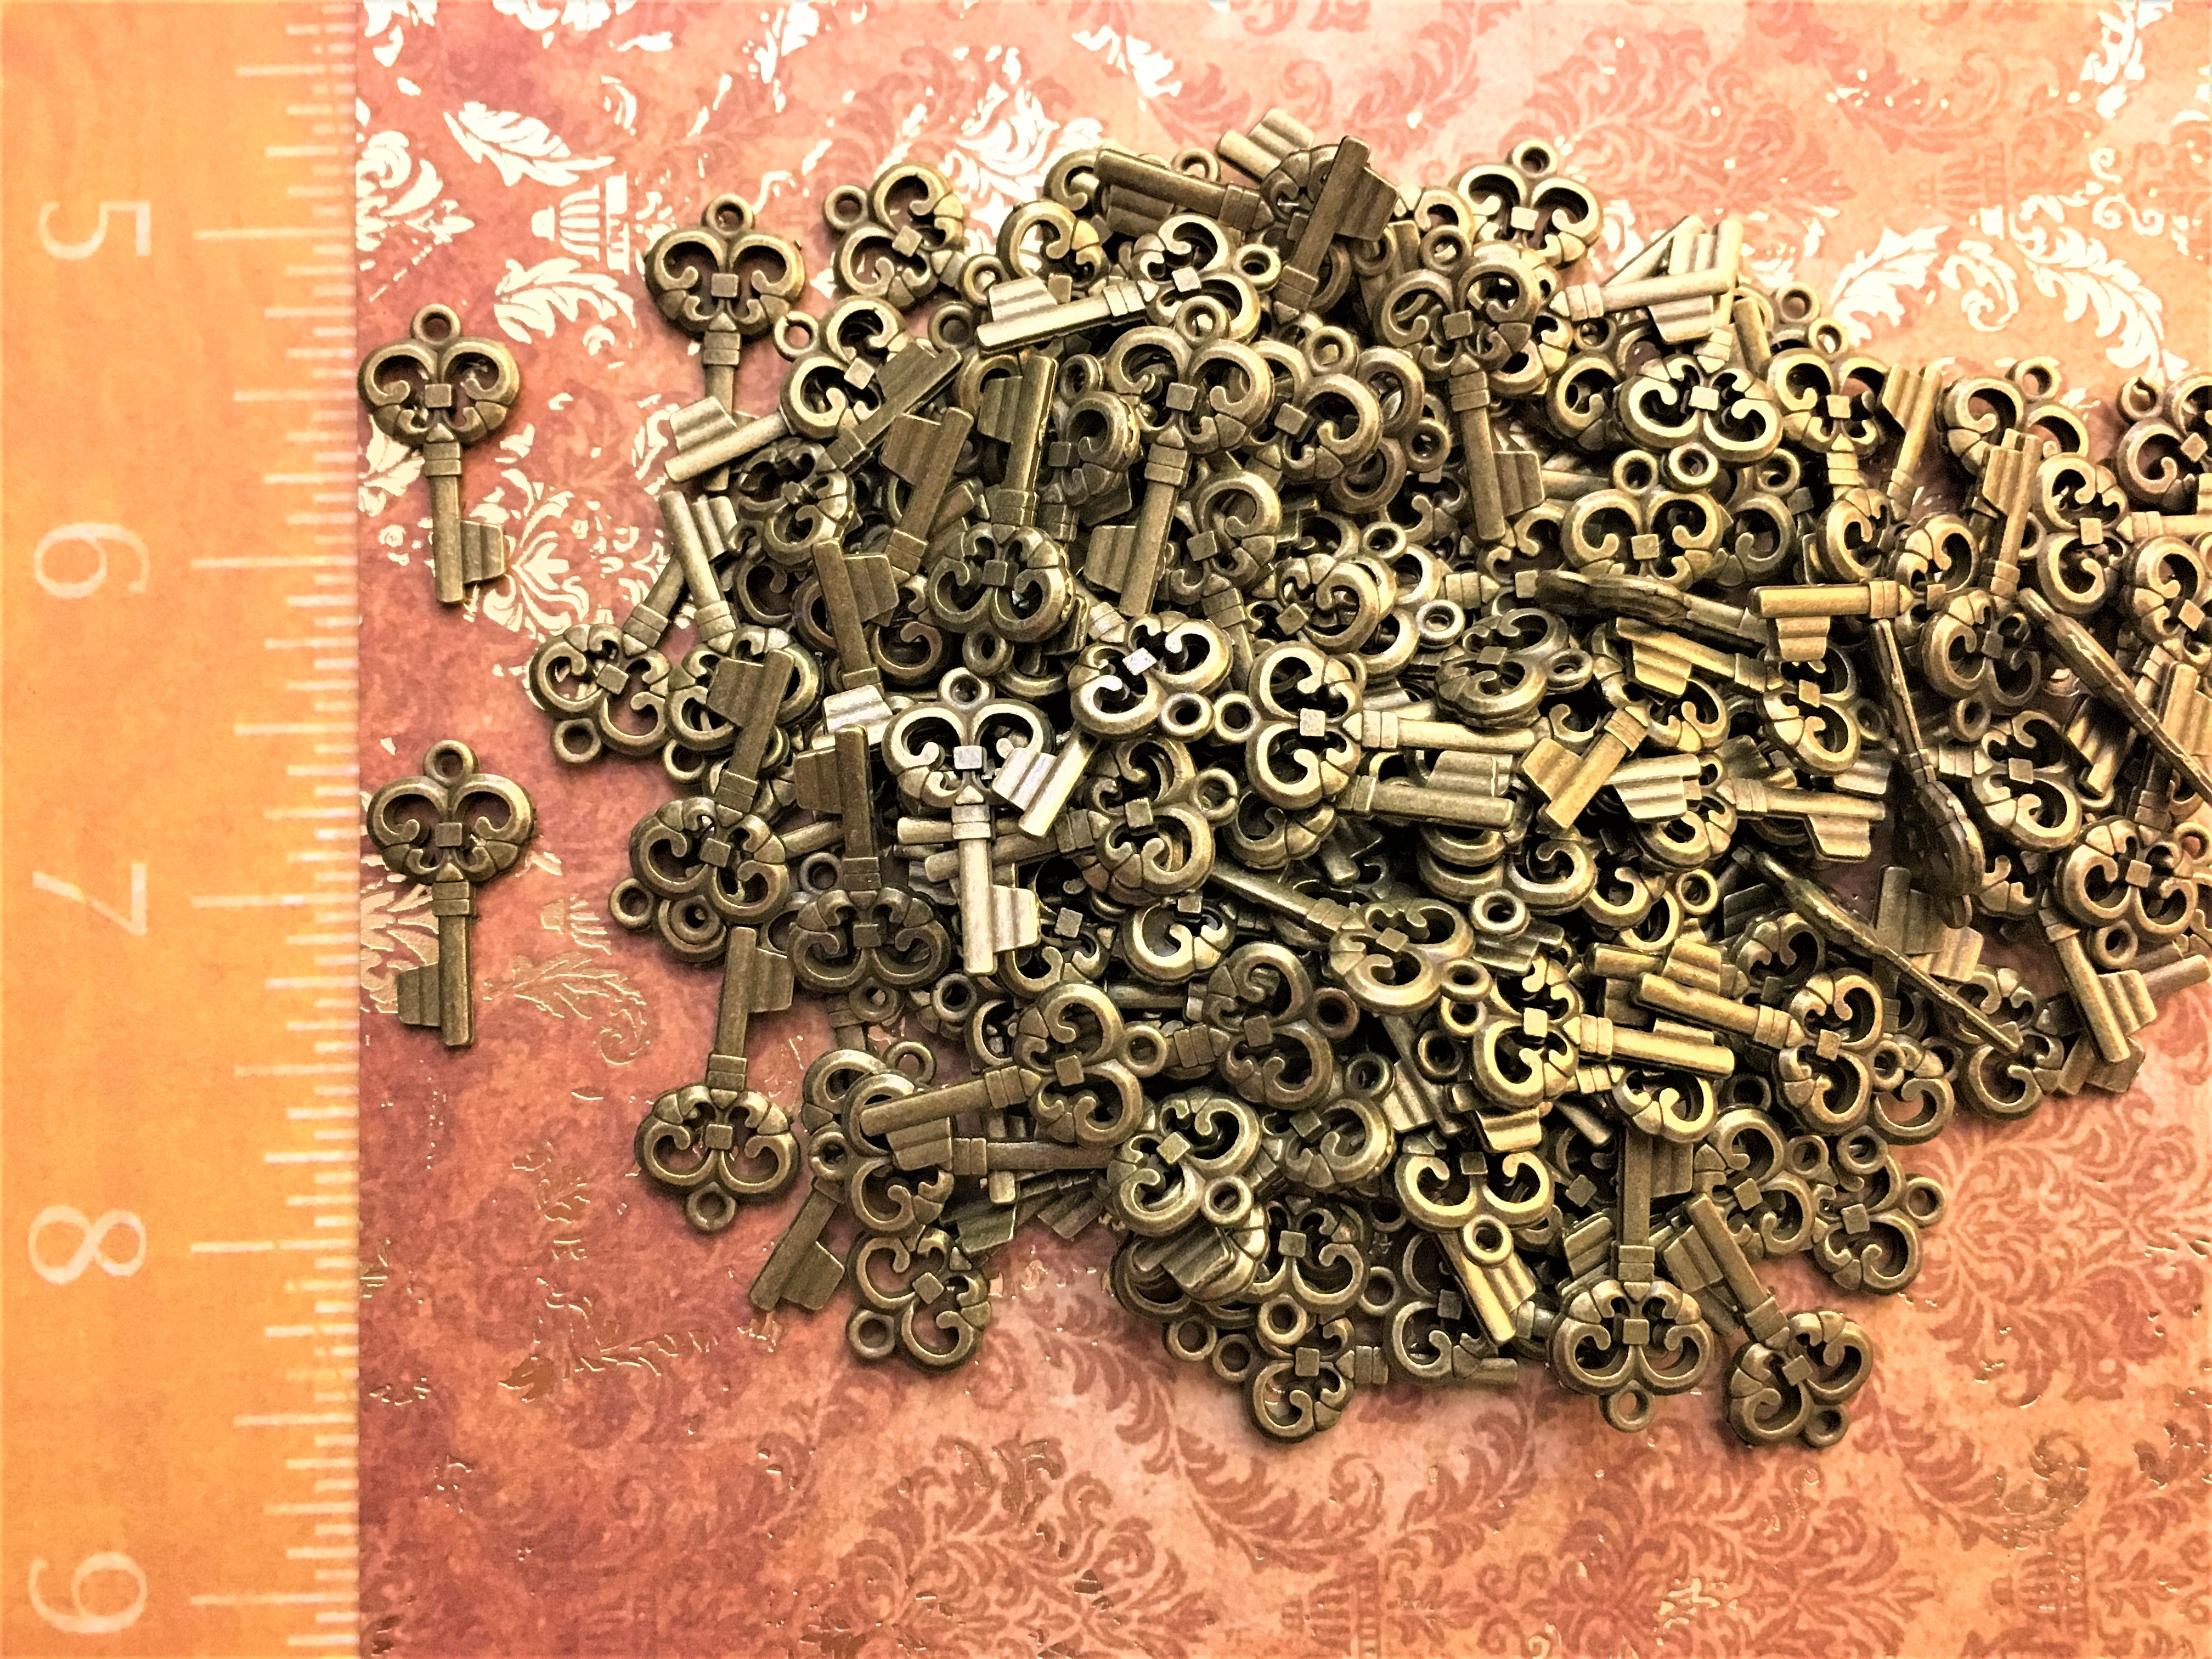 Mixed Lot New Keys Vintage Skeleton Charms Antique Jewelry Steampunk Wedding Bridal Shower Invitation Favor Gift Bead Supplies Pendant Craft